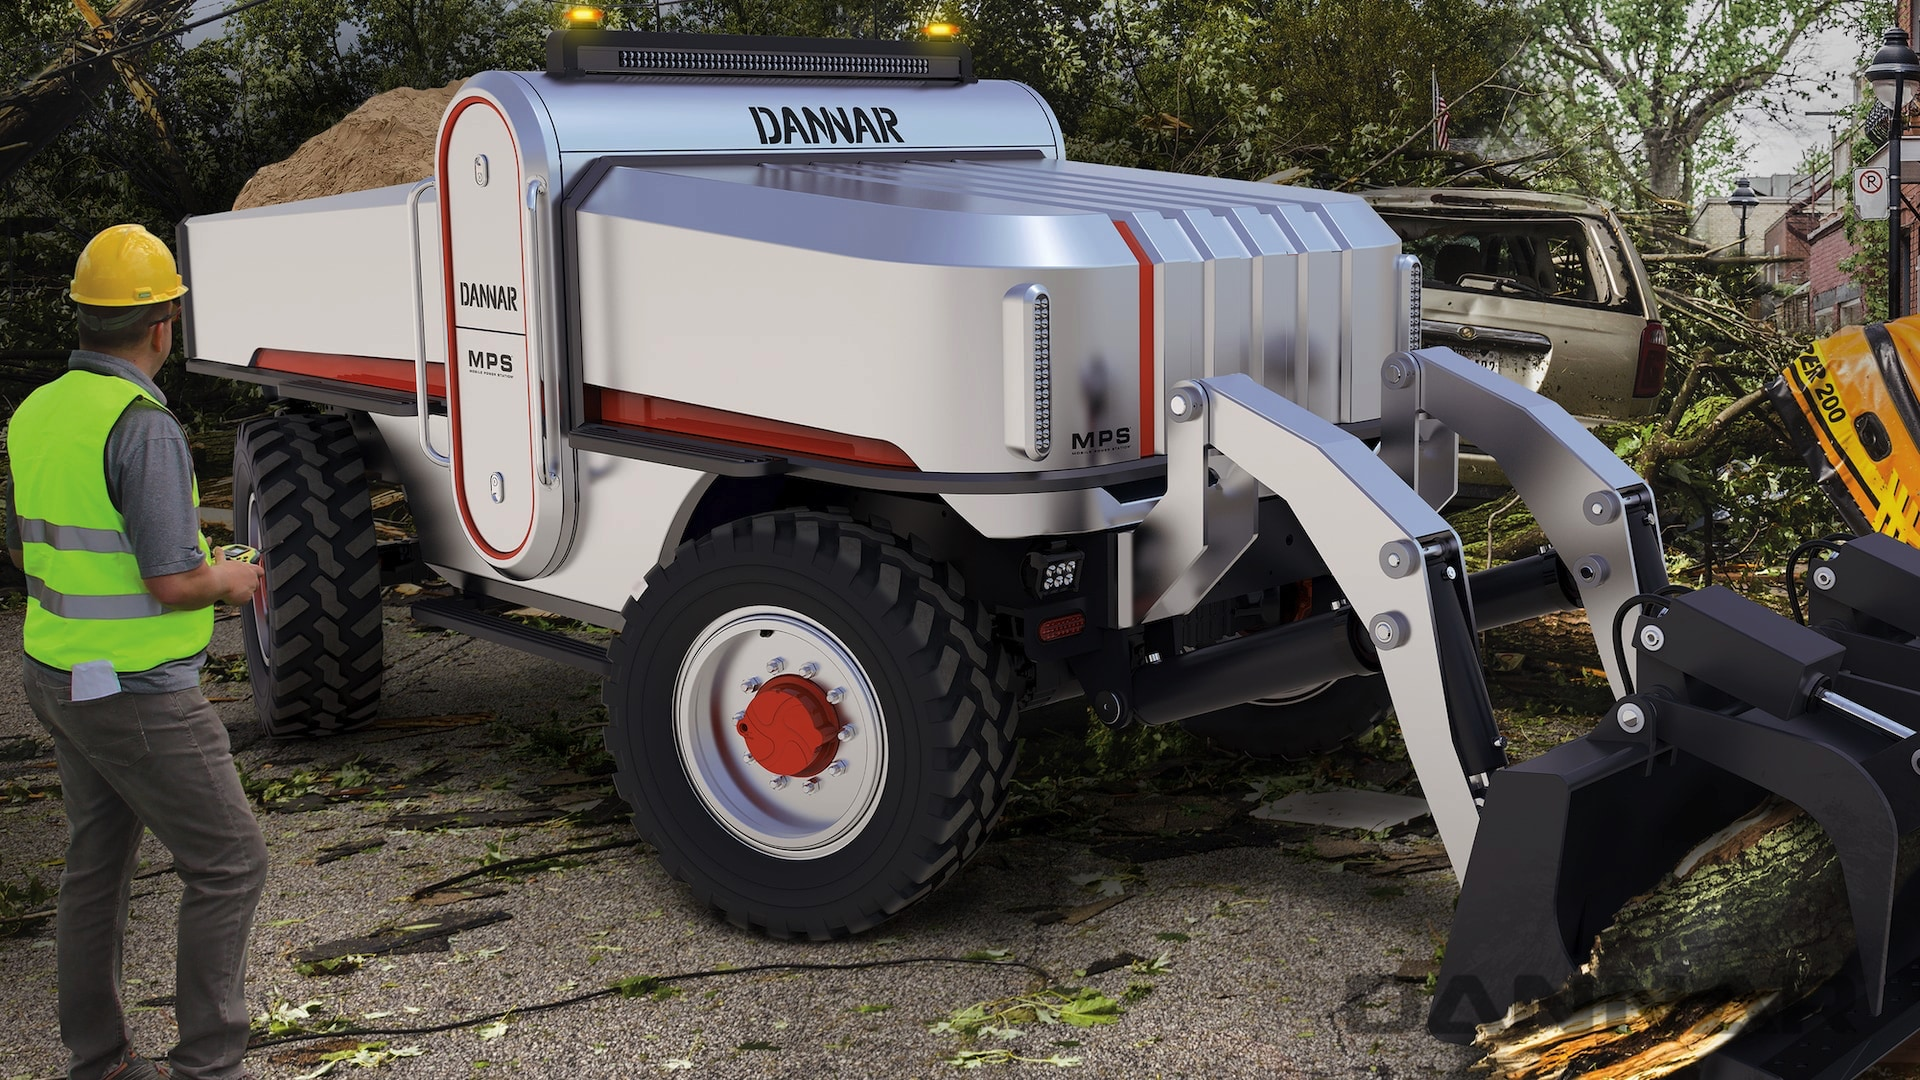 DANNAR MPS 400 Revolutionary Work Vehicle Disaster Relief